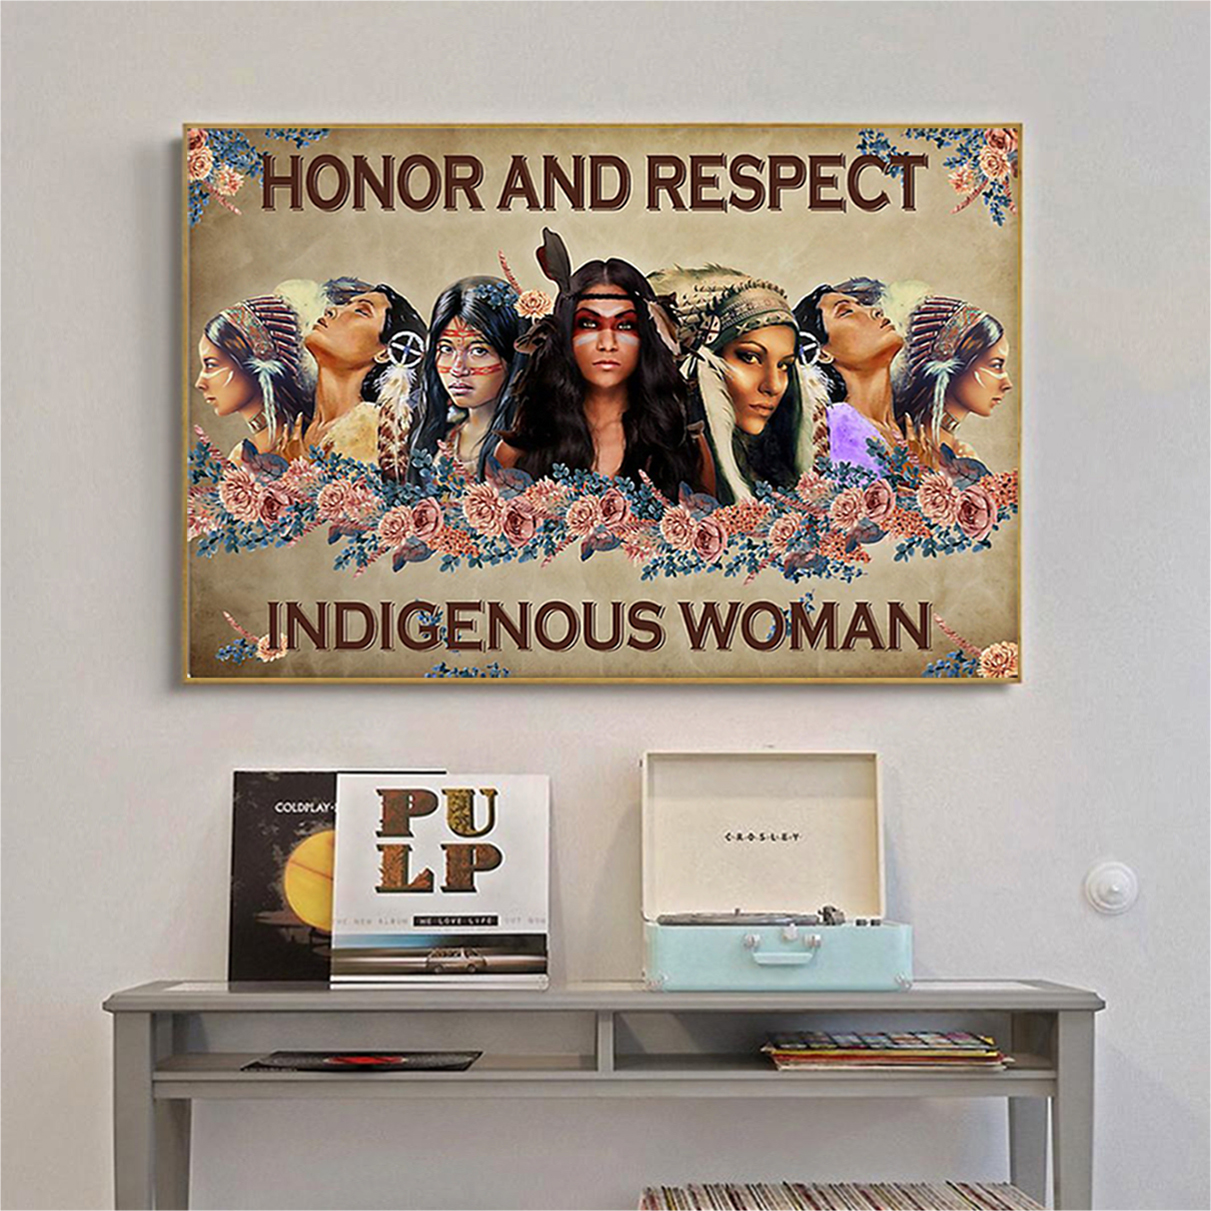 Honor and respect indigenous woman poster A3